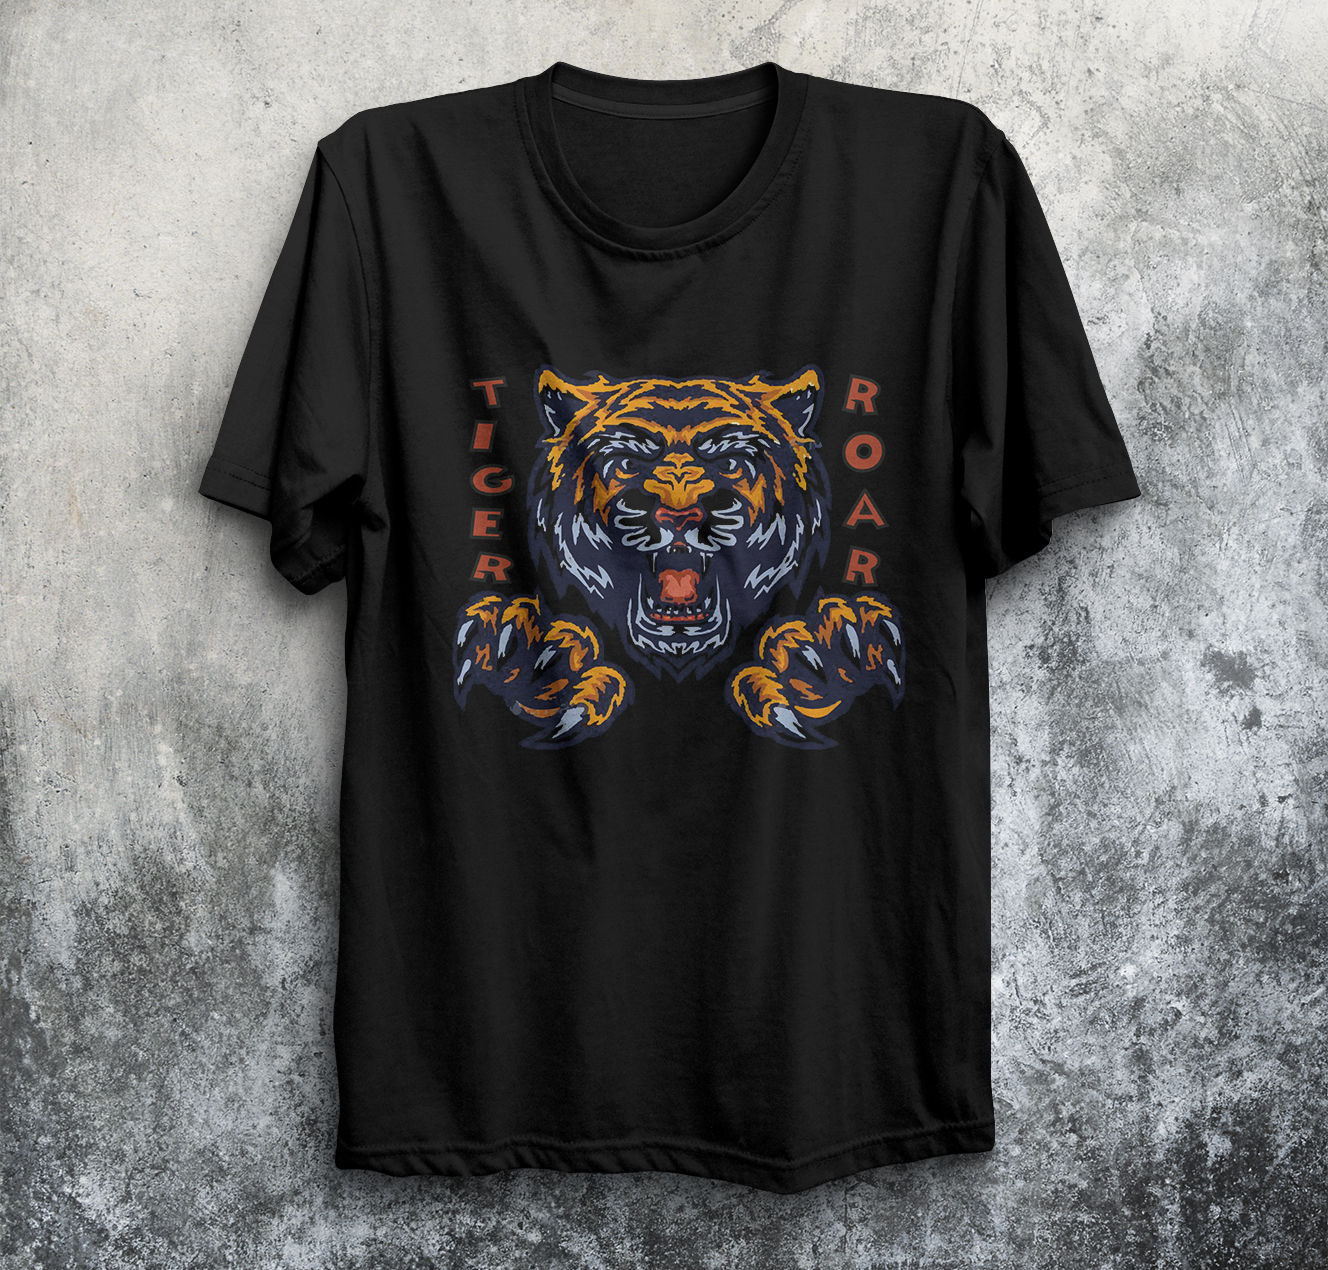 I will create unique and attractive graphic t shirt design